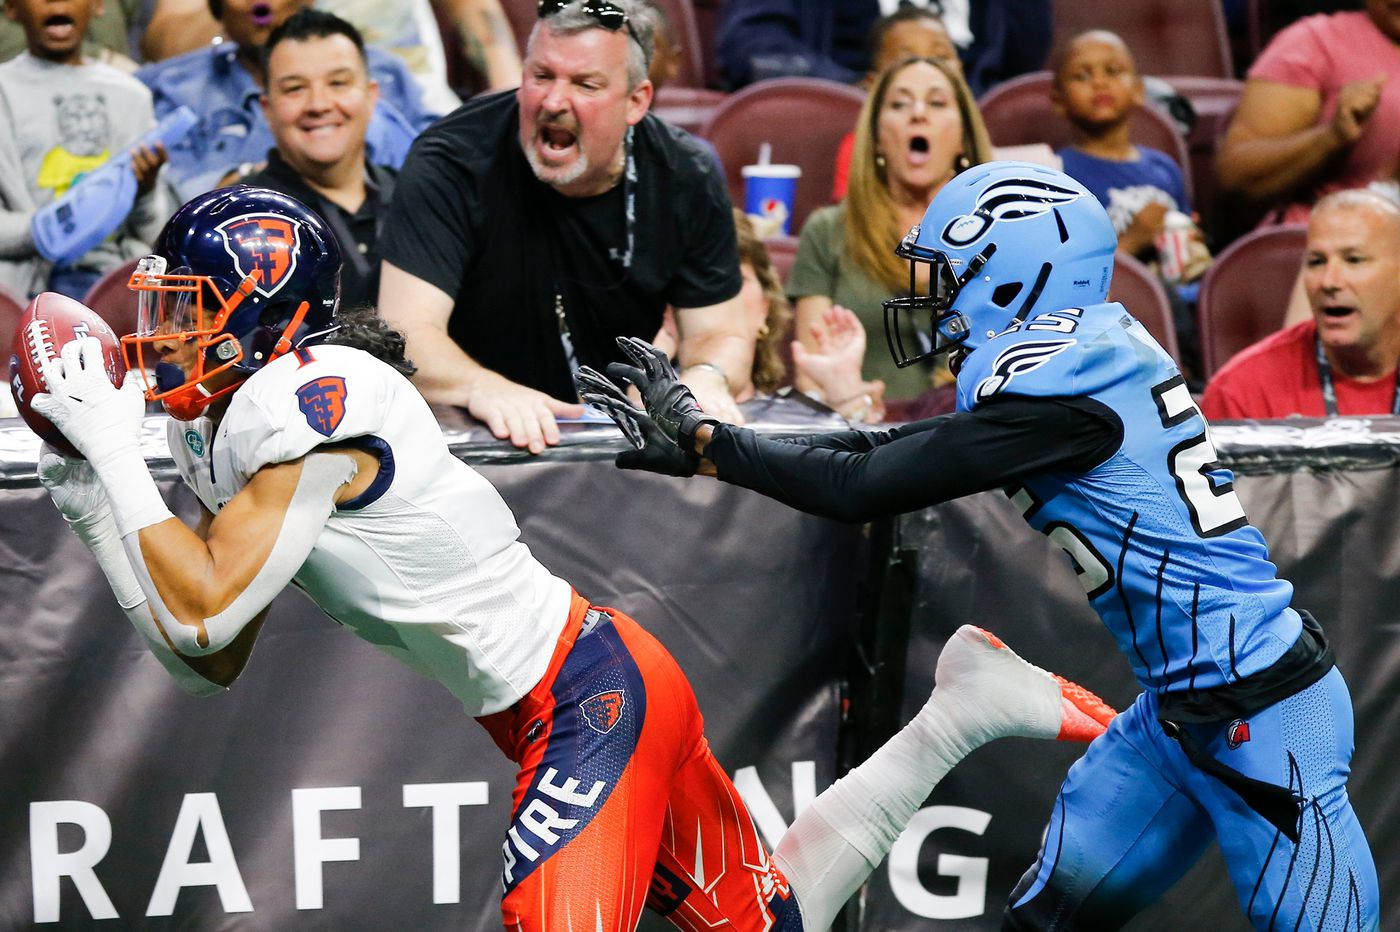 Arena Football League: Soul defensive backs face big test with Baltimore Brigade's tough receivers